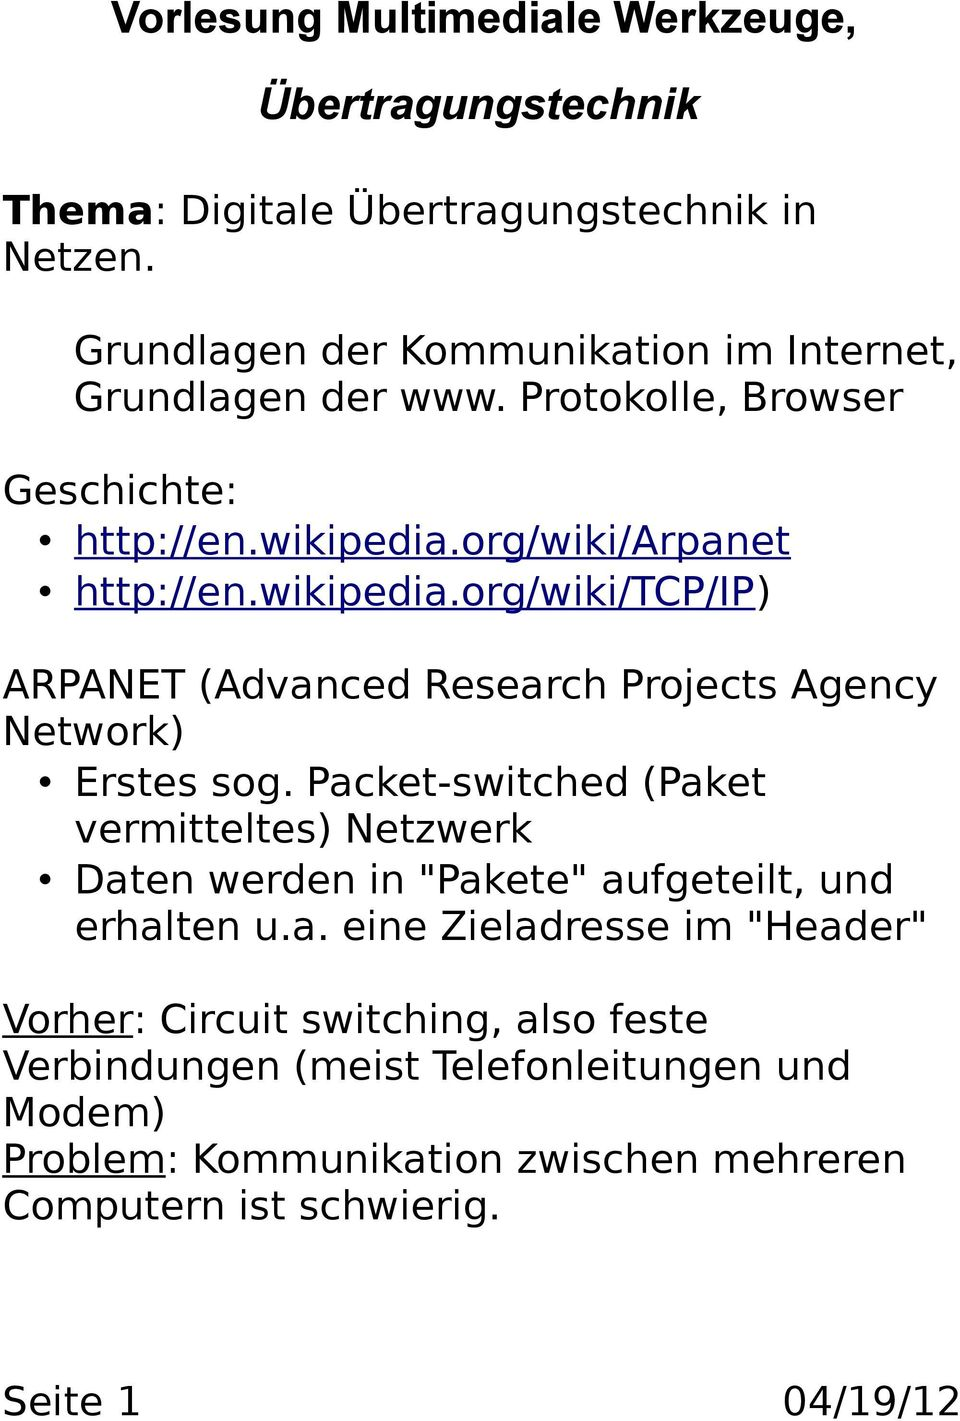 org/wiki/arpanet http://en.wikipedia.org/wiki/tcp/ip) ARPANET (Advanced Research Projects Agency Network) Erstes sog.